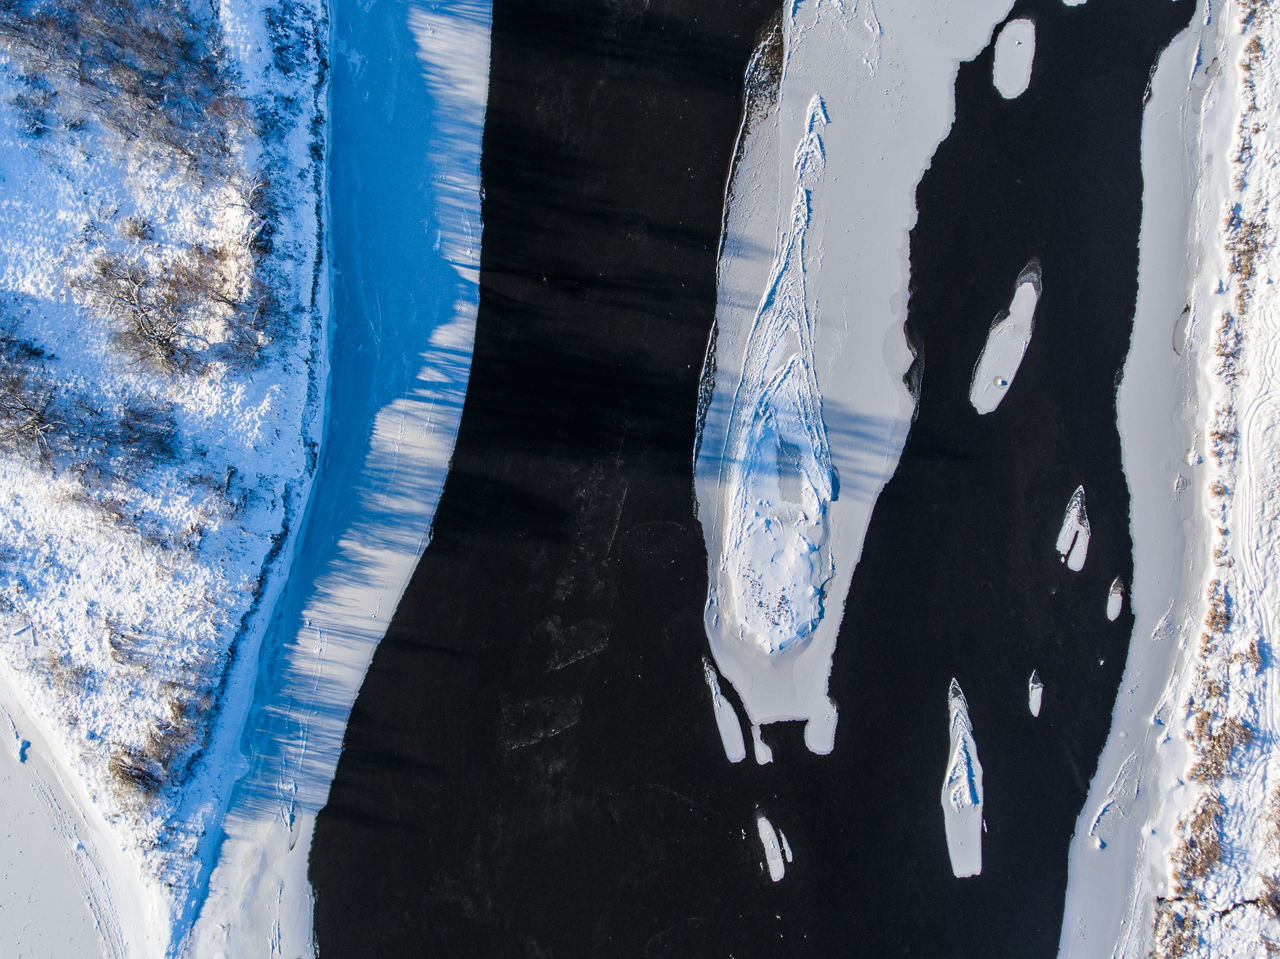 Abstract Aerial Aerial Shot Aerial View Aerialphotography Backgrounds Blue Close-up Day Dji Frozen Full Frame Indoors  Multi-layered Effect No People River Snow Water Winter